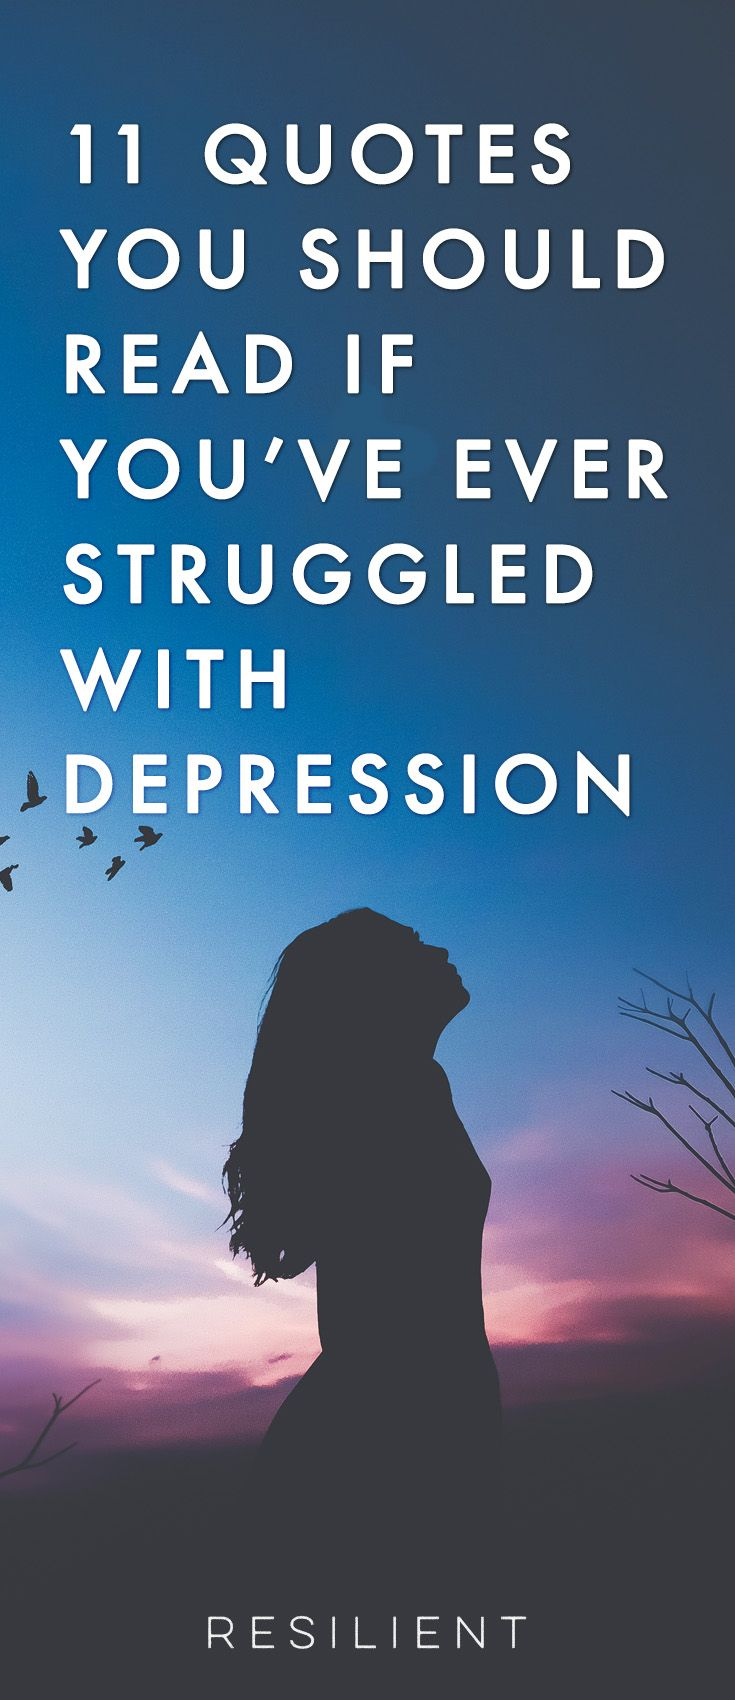 Inspirational Quotes About Depression: 11 Inspirational Quotes For People With Depression